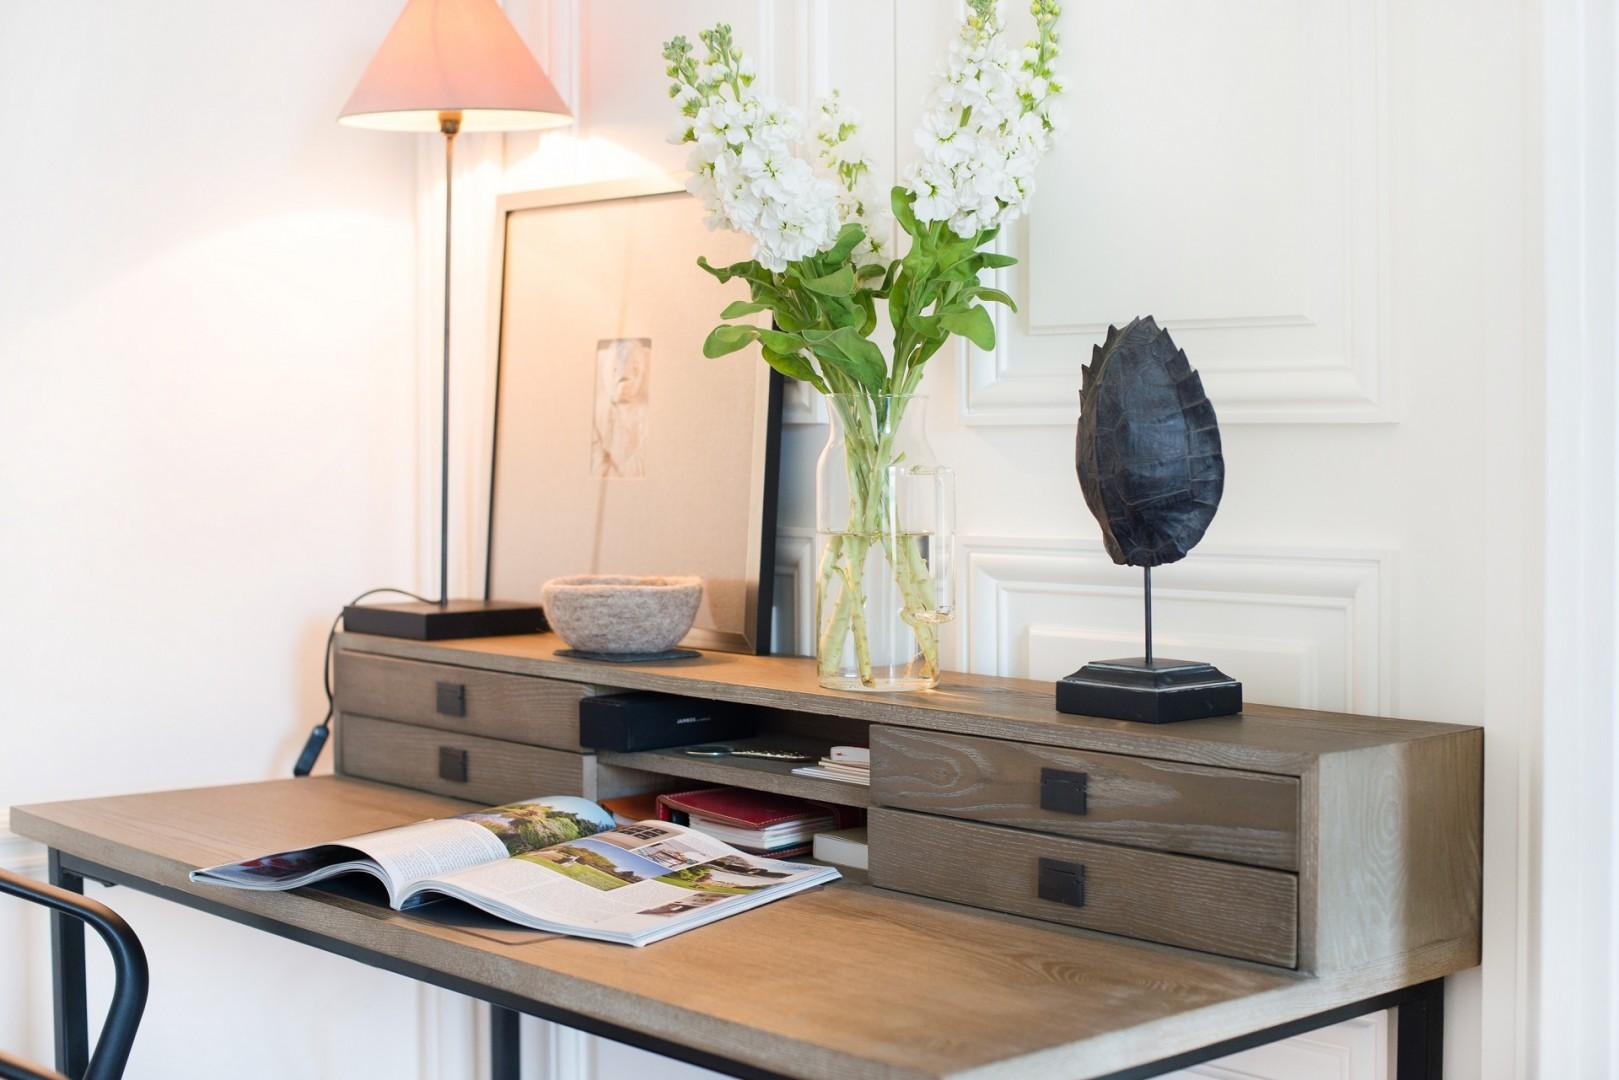 Browse French magazines in this charming desk alcove.